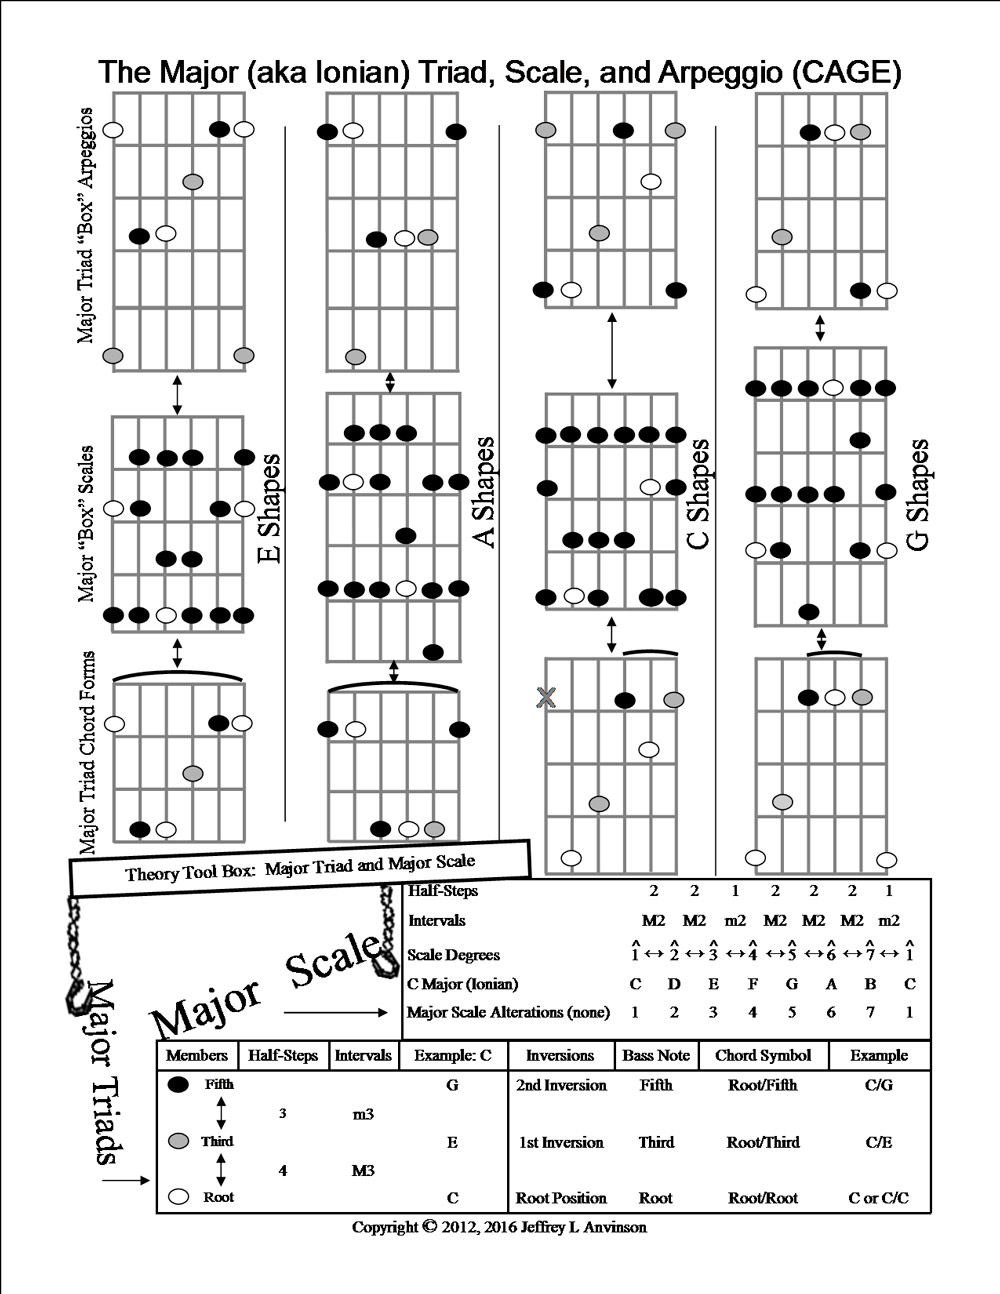 CAGE System Chords, Arpeggios, and Scales for the Guitar